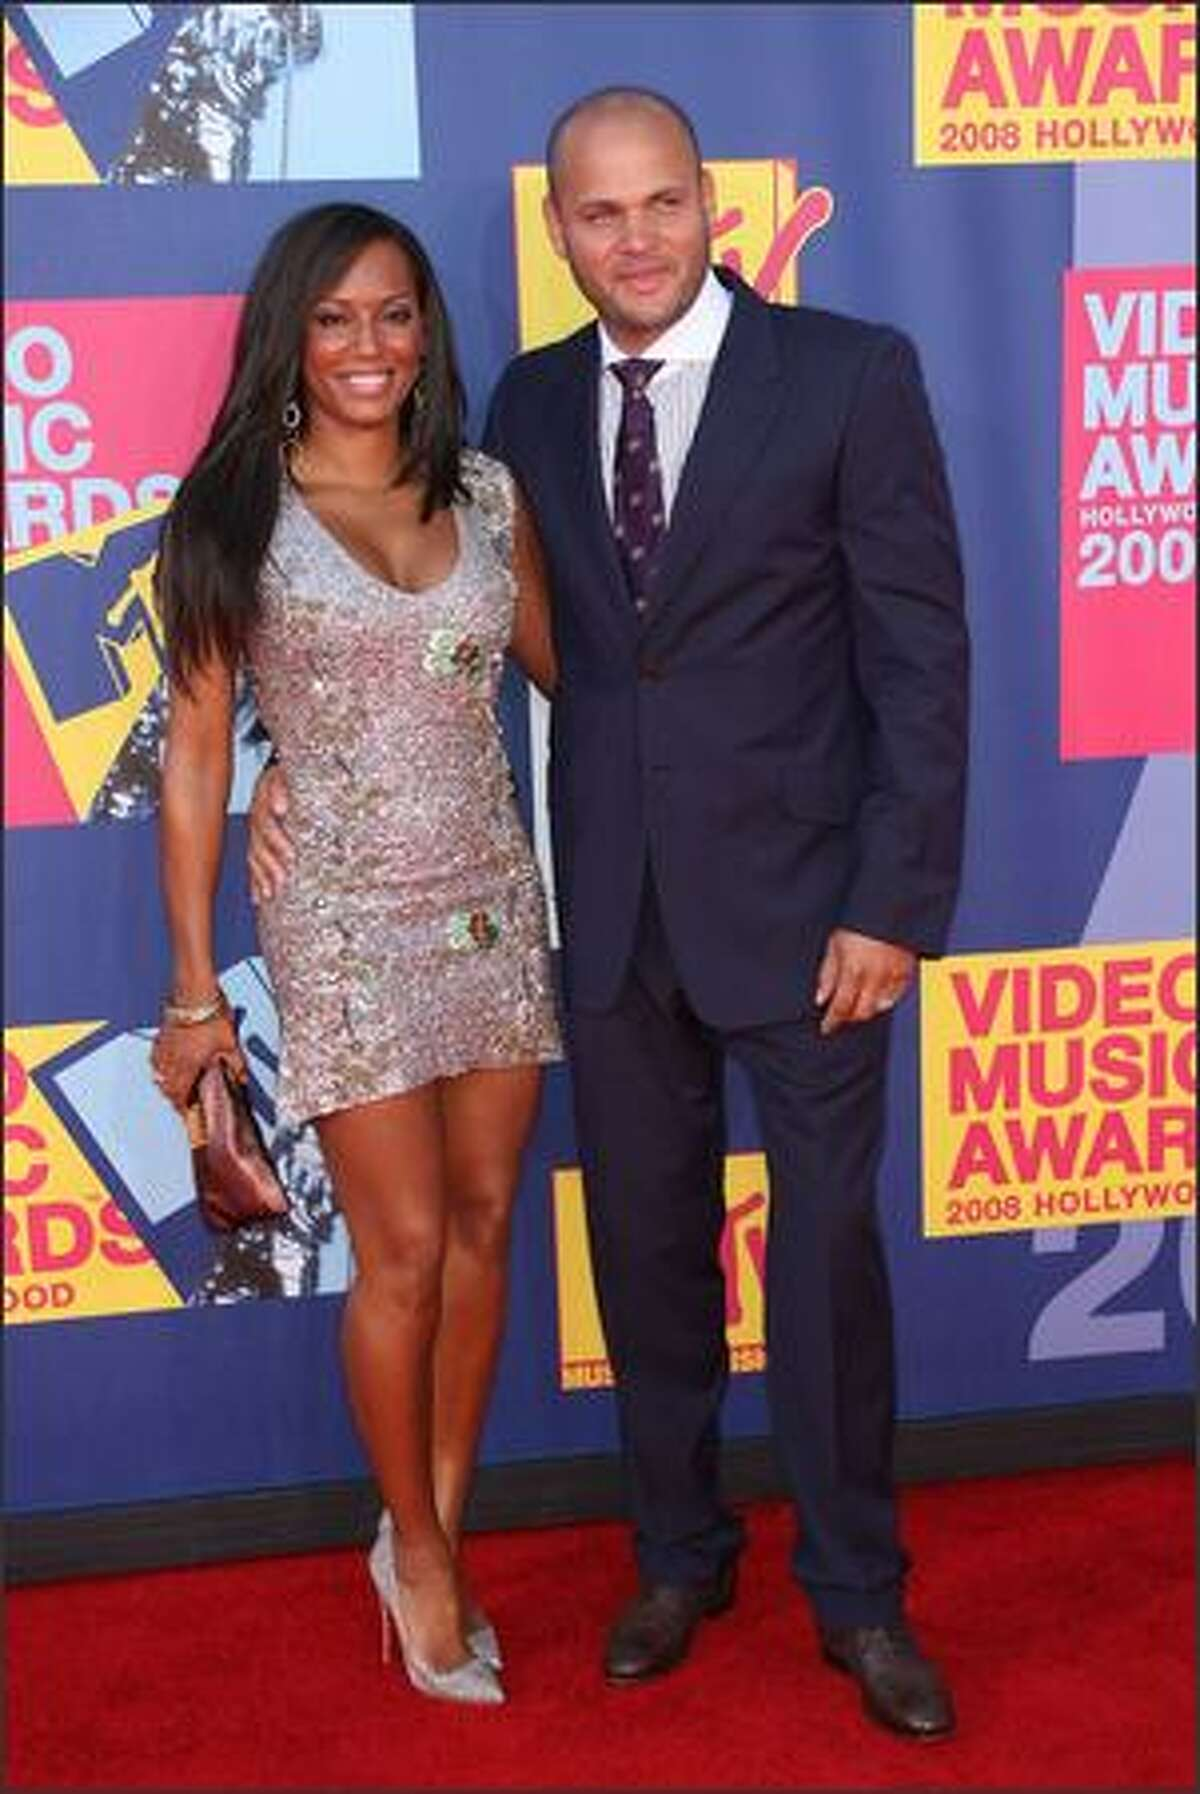 Singer Melanie Brown, left, and Stephen Belafonte arrive at the 2008 MTV Video Music Awards at Paramount Pictures Studios on Sunday in Los Angeles, California.